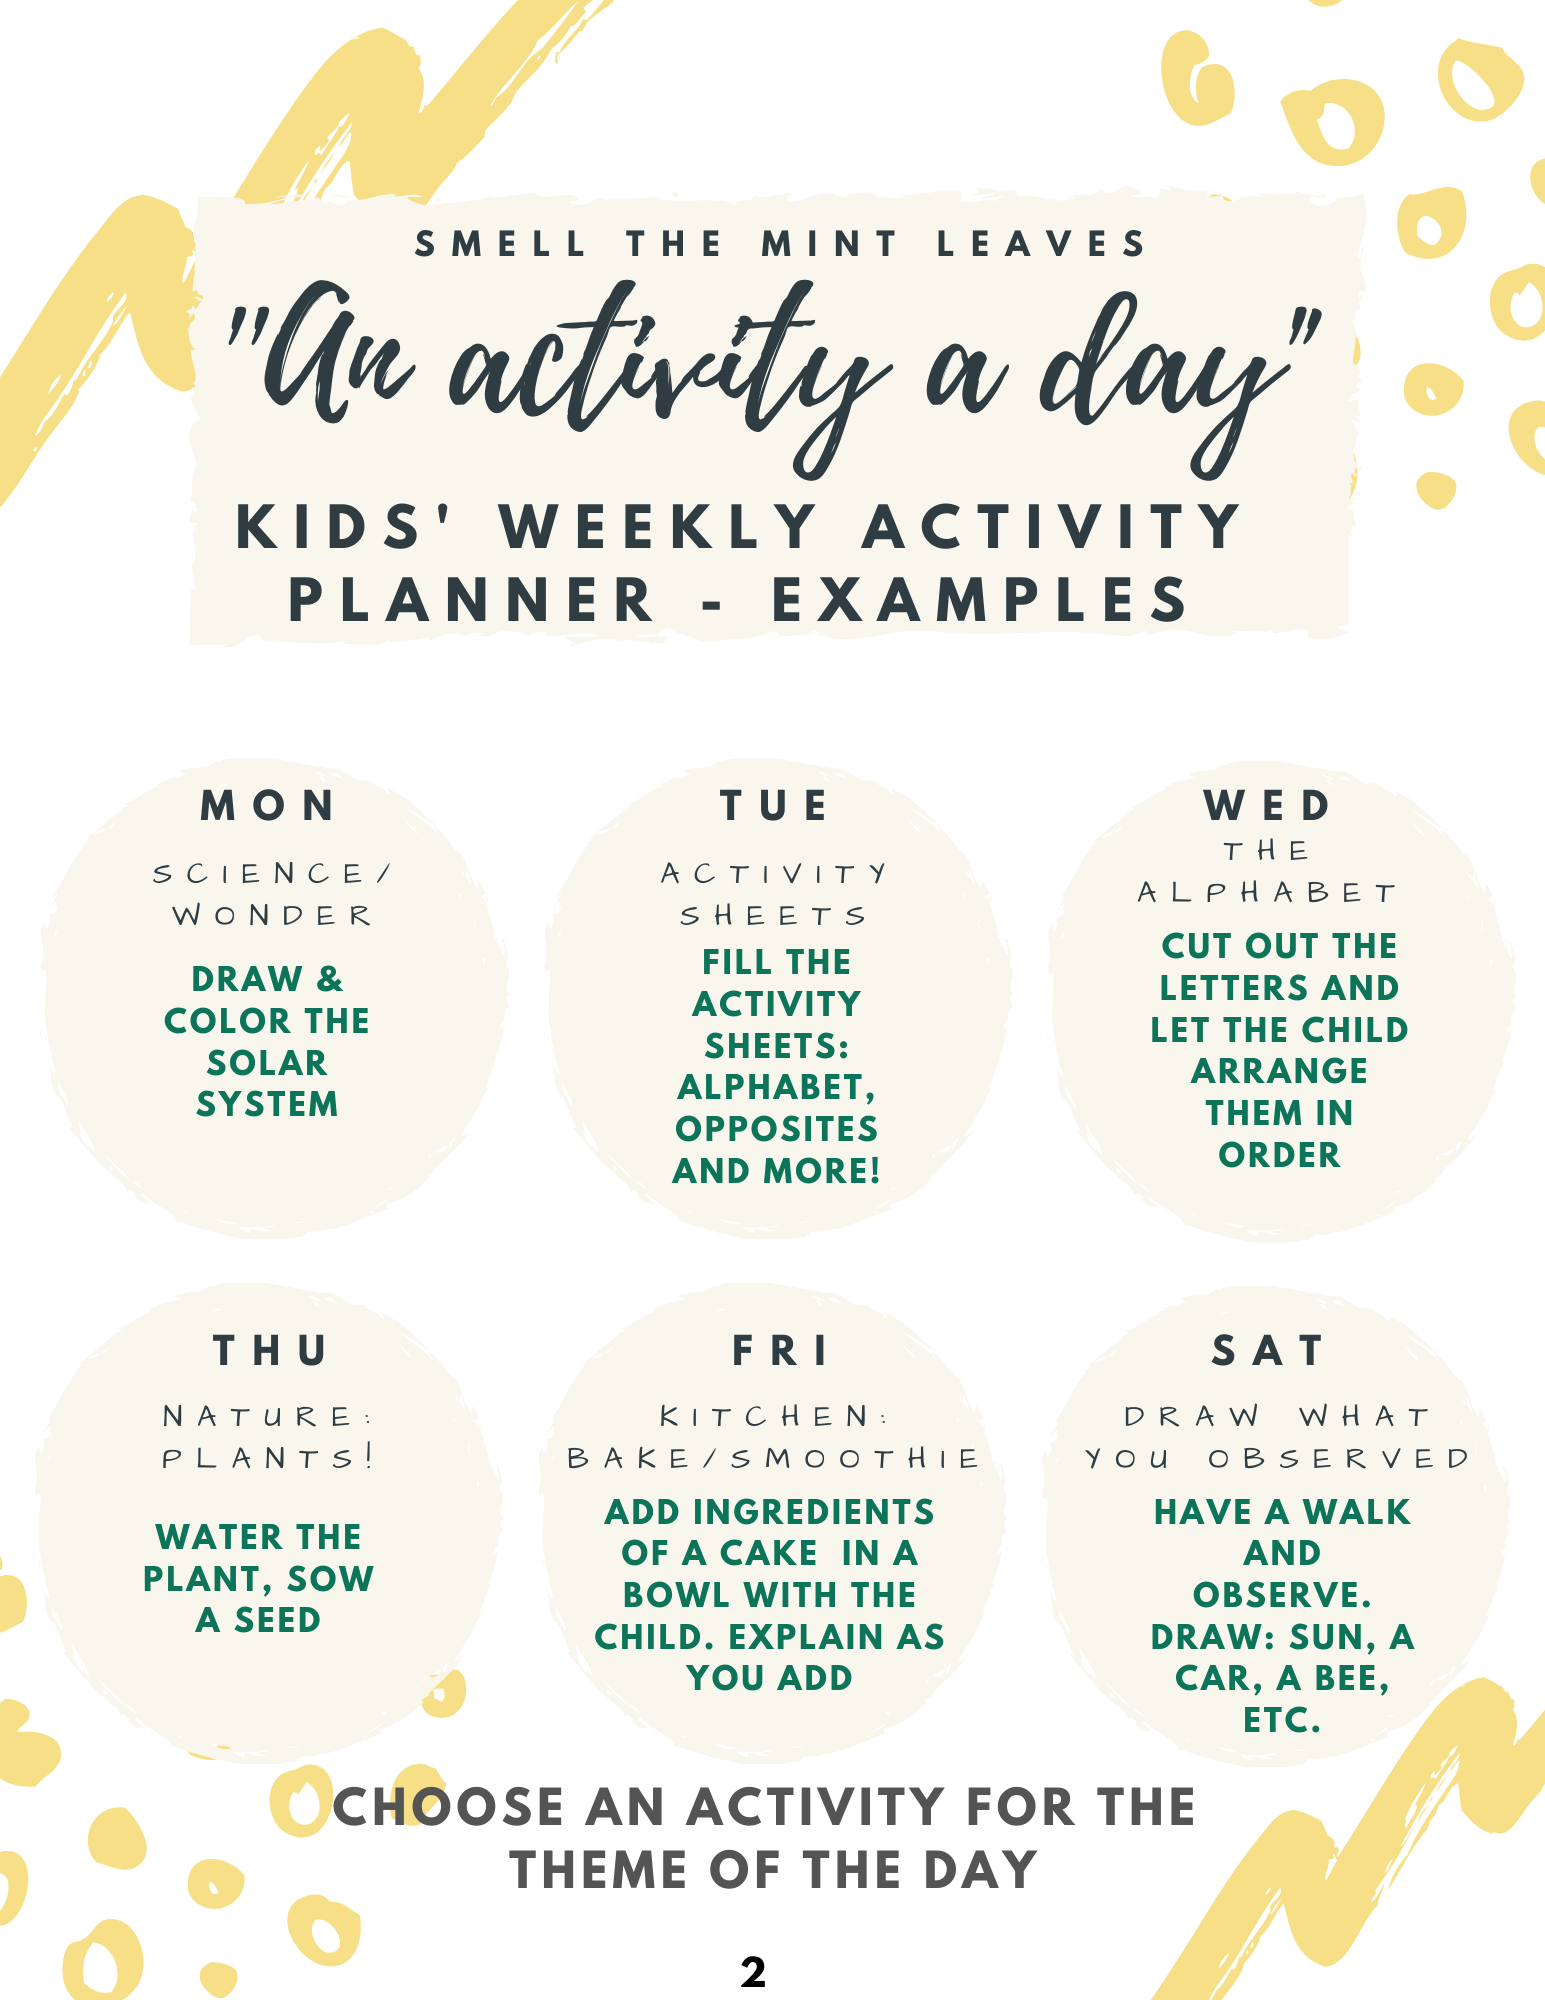 Kids activities at home weekly planner